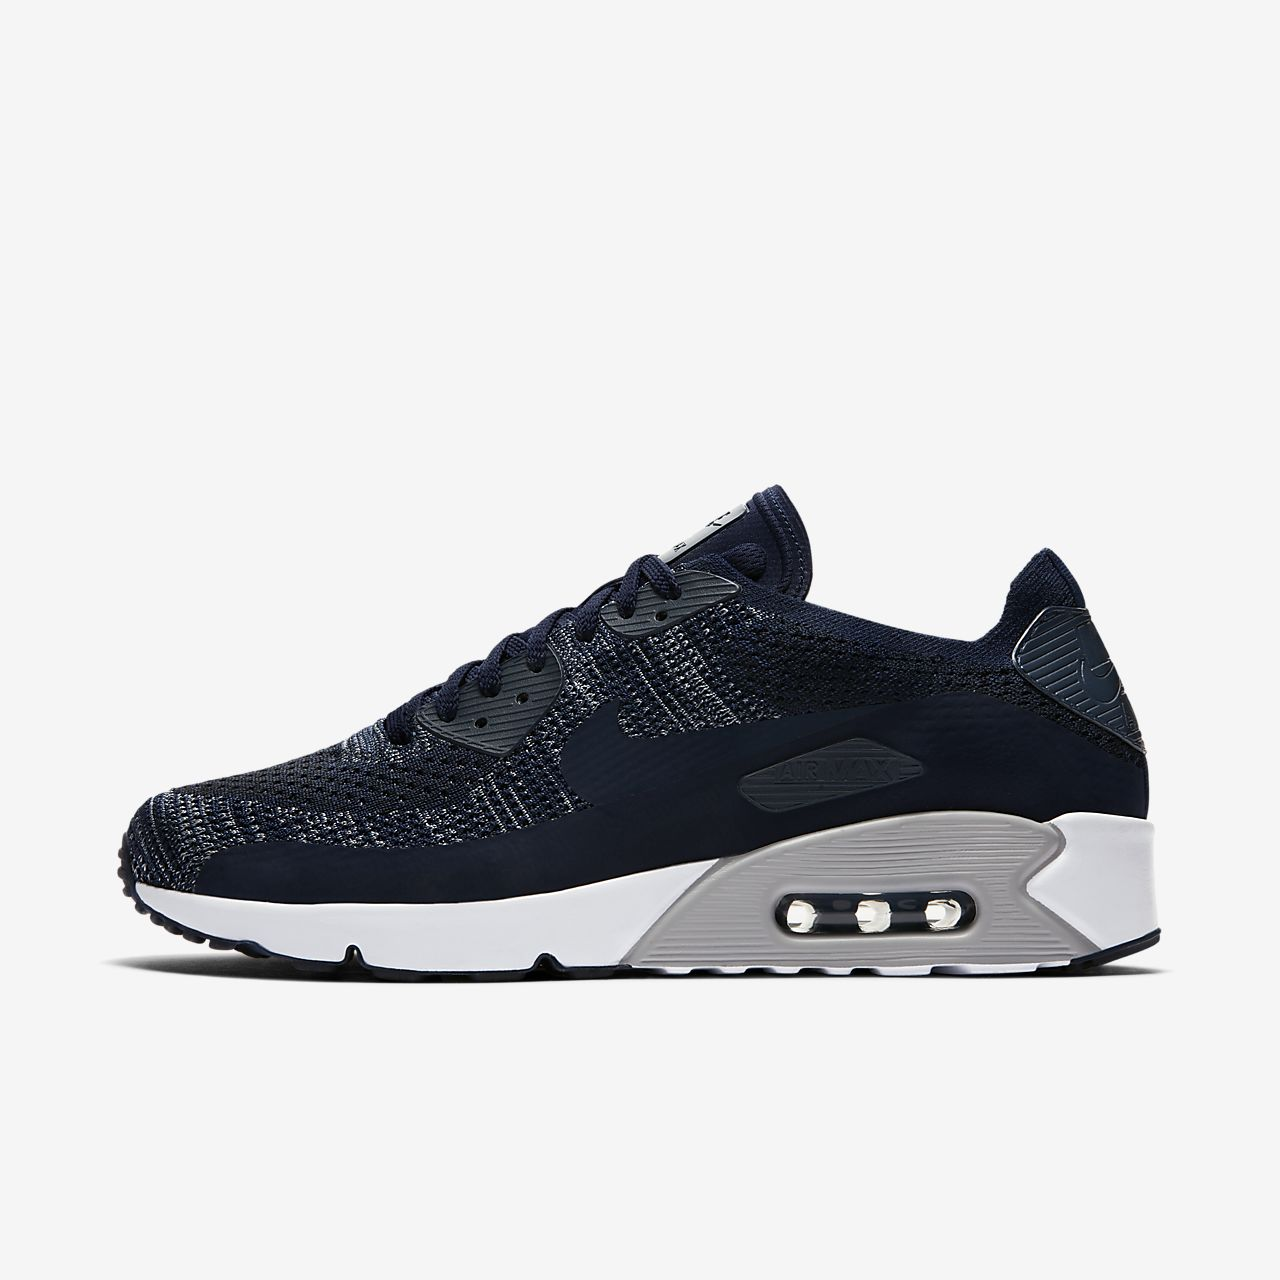 Buy Air max 90 kpu tpu mens shoes blue 2016 72% off For Sale